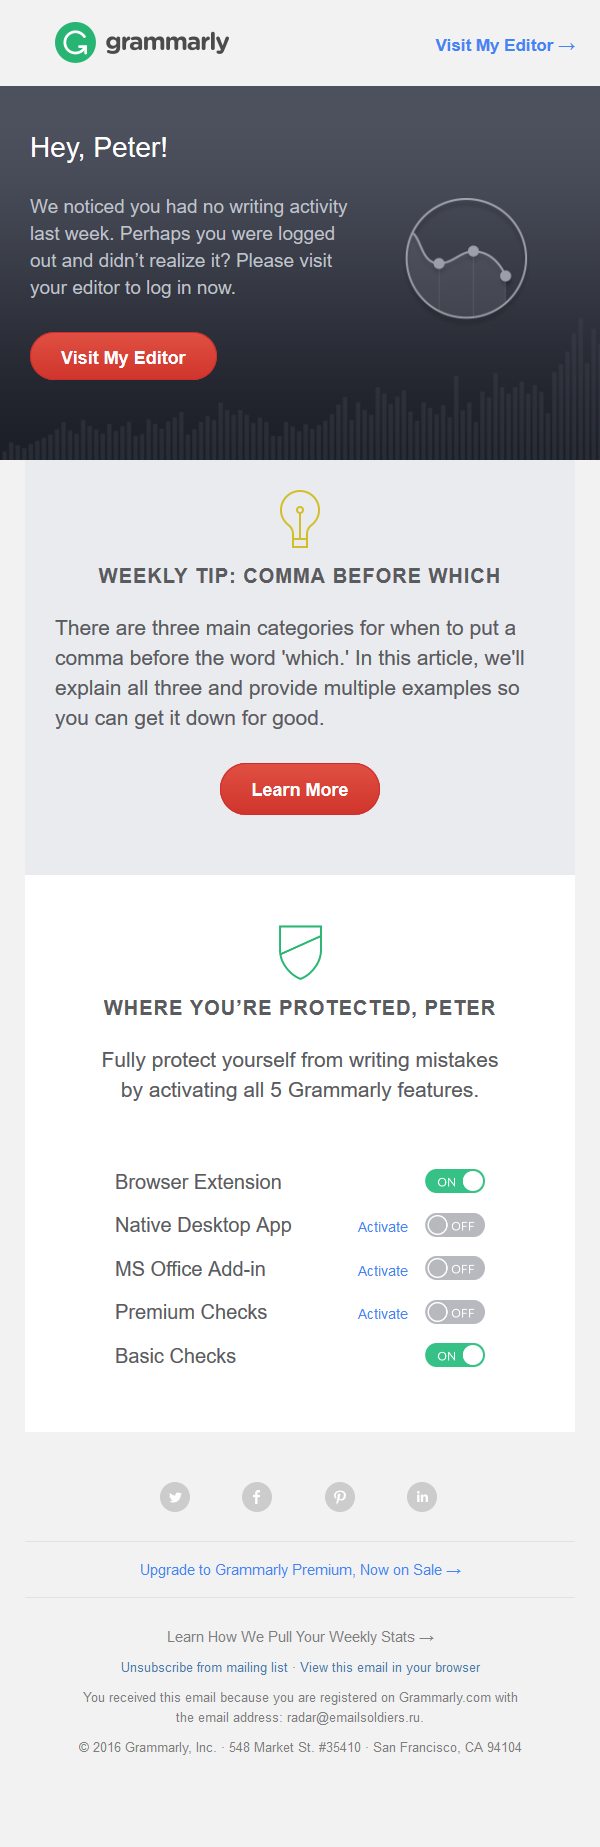 Grammarly - Your Weekly Progress Report & Tips